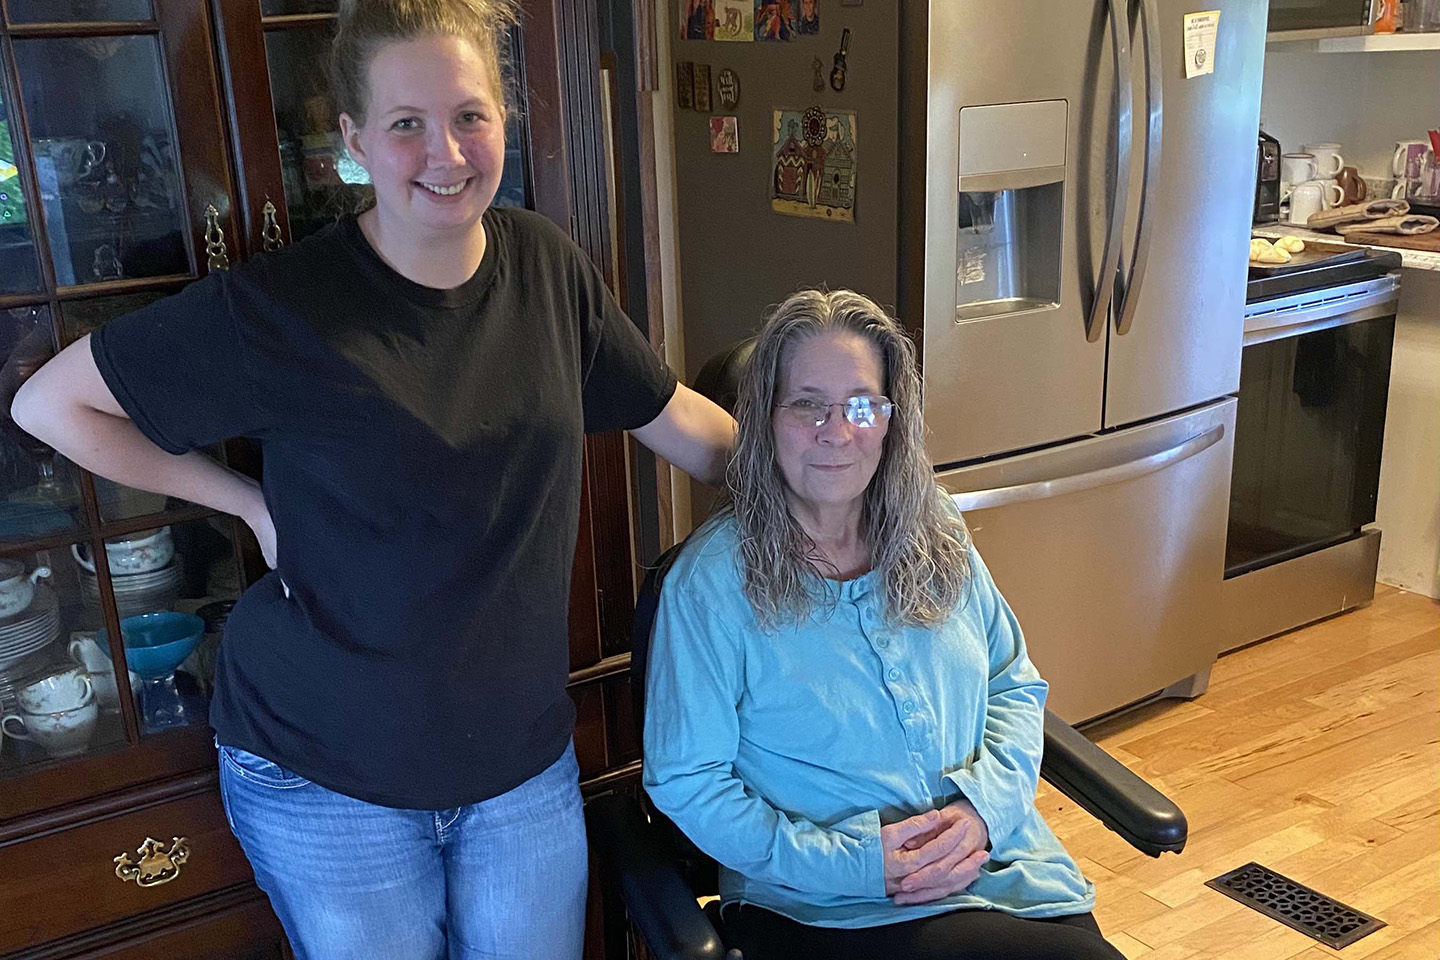 Finding a job at Goodwill made it possible for Erica to move to Cookeville to take care of her mother, Joyce Vaughan.